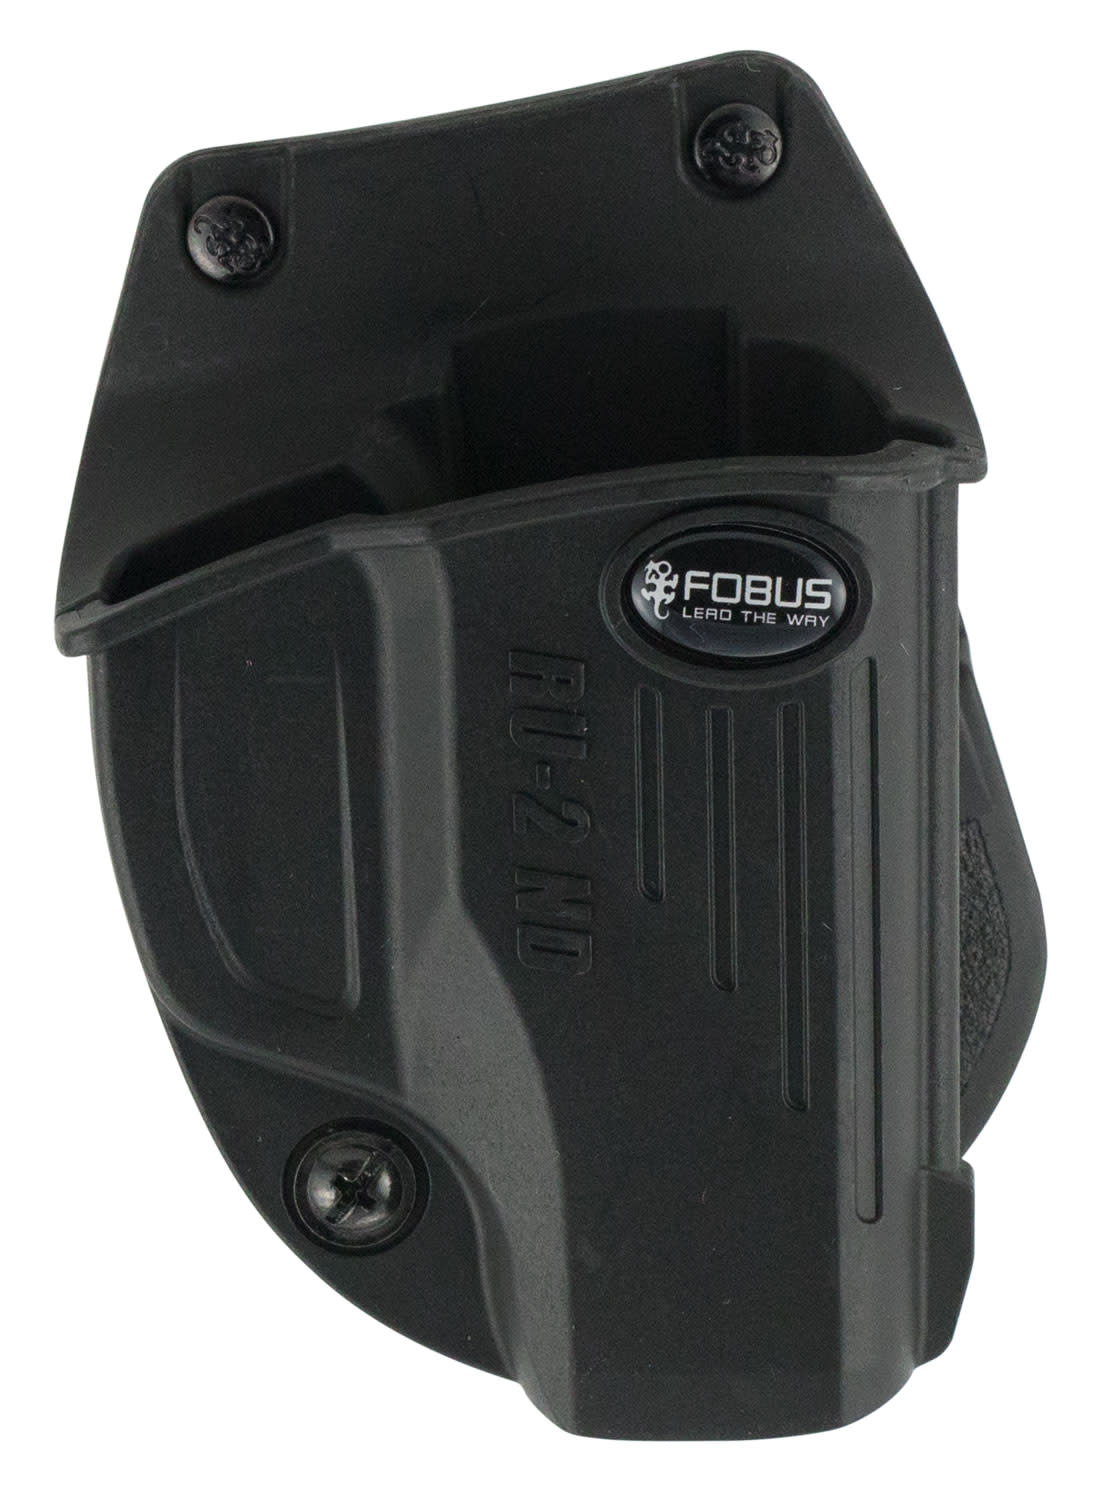 Fobus Evolution Paddle Holster - Ruger SP101